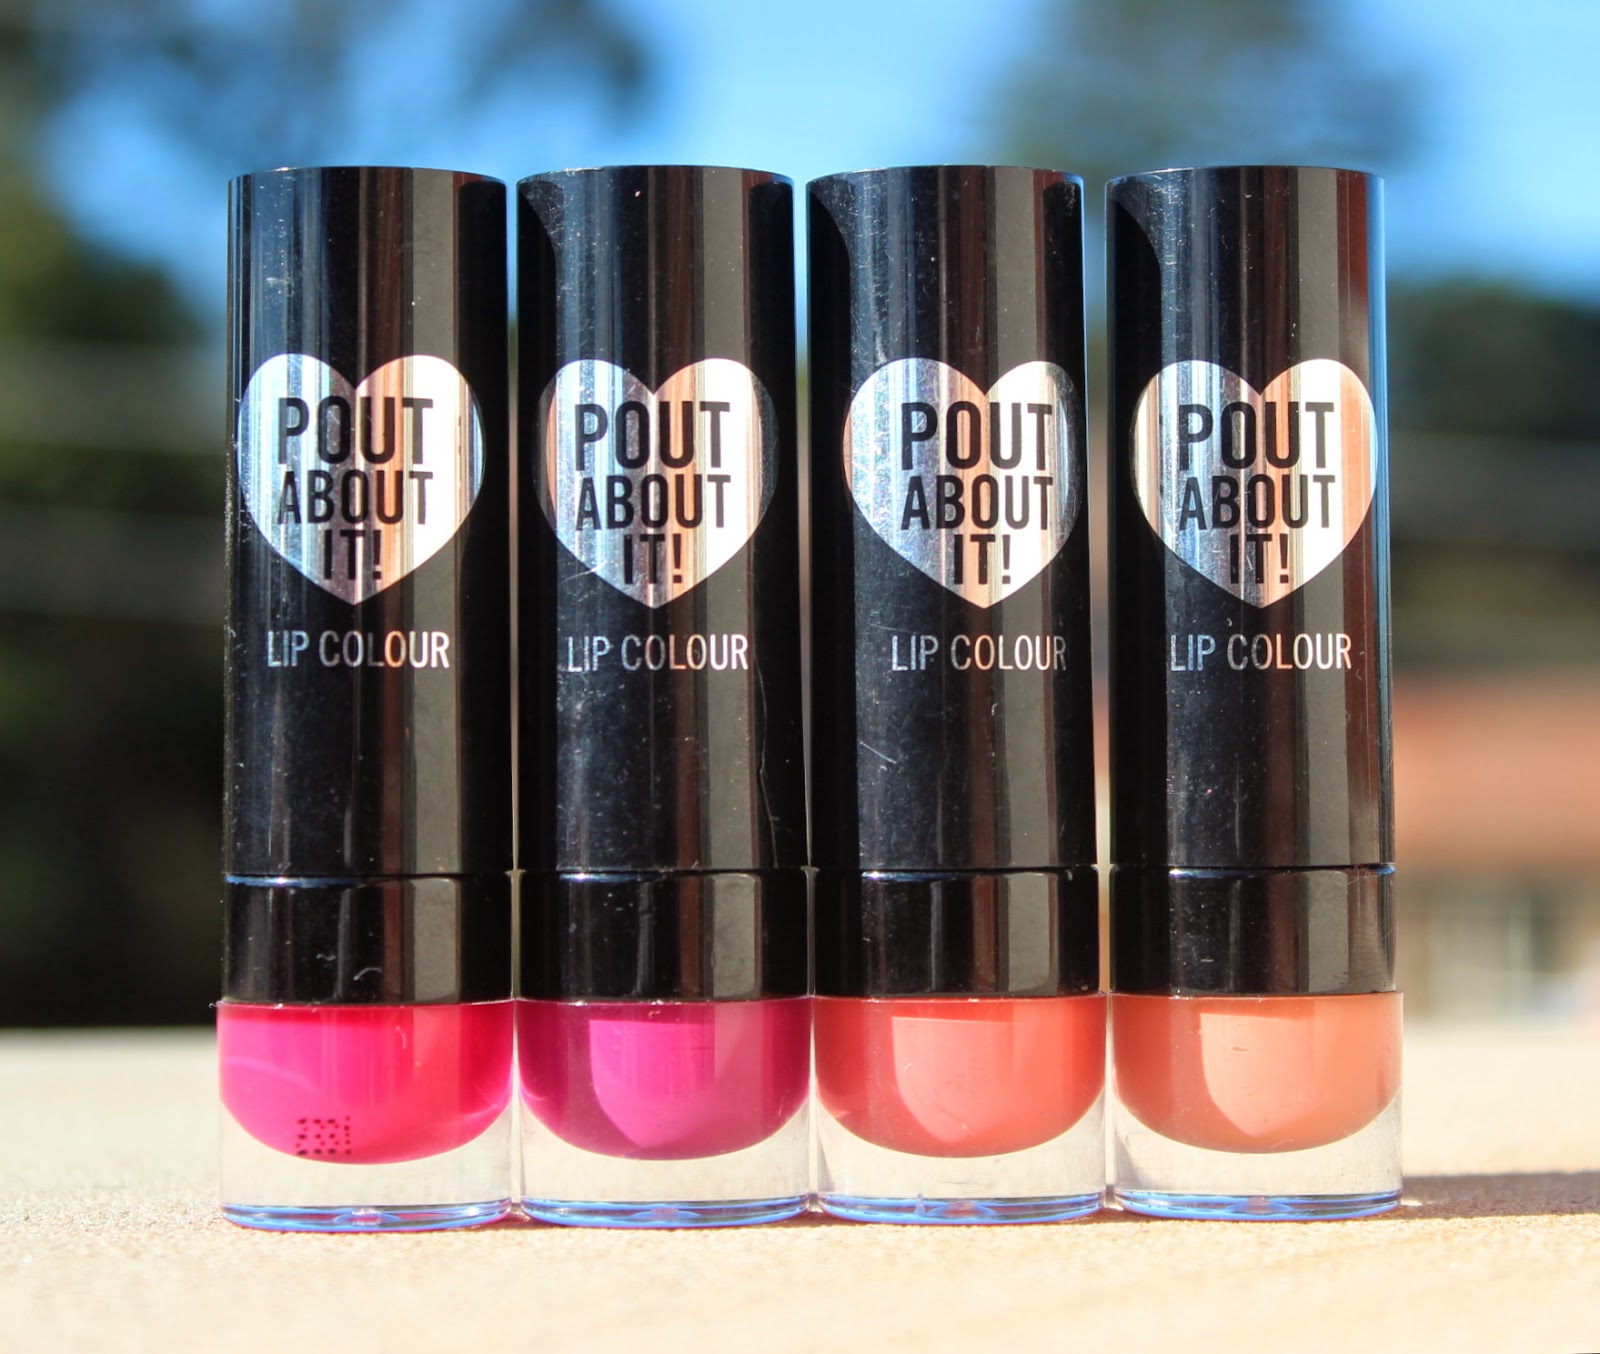 Sportsgirl Pout About It Lip Colours: Review & Swatches